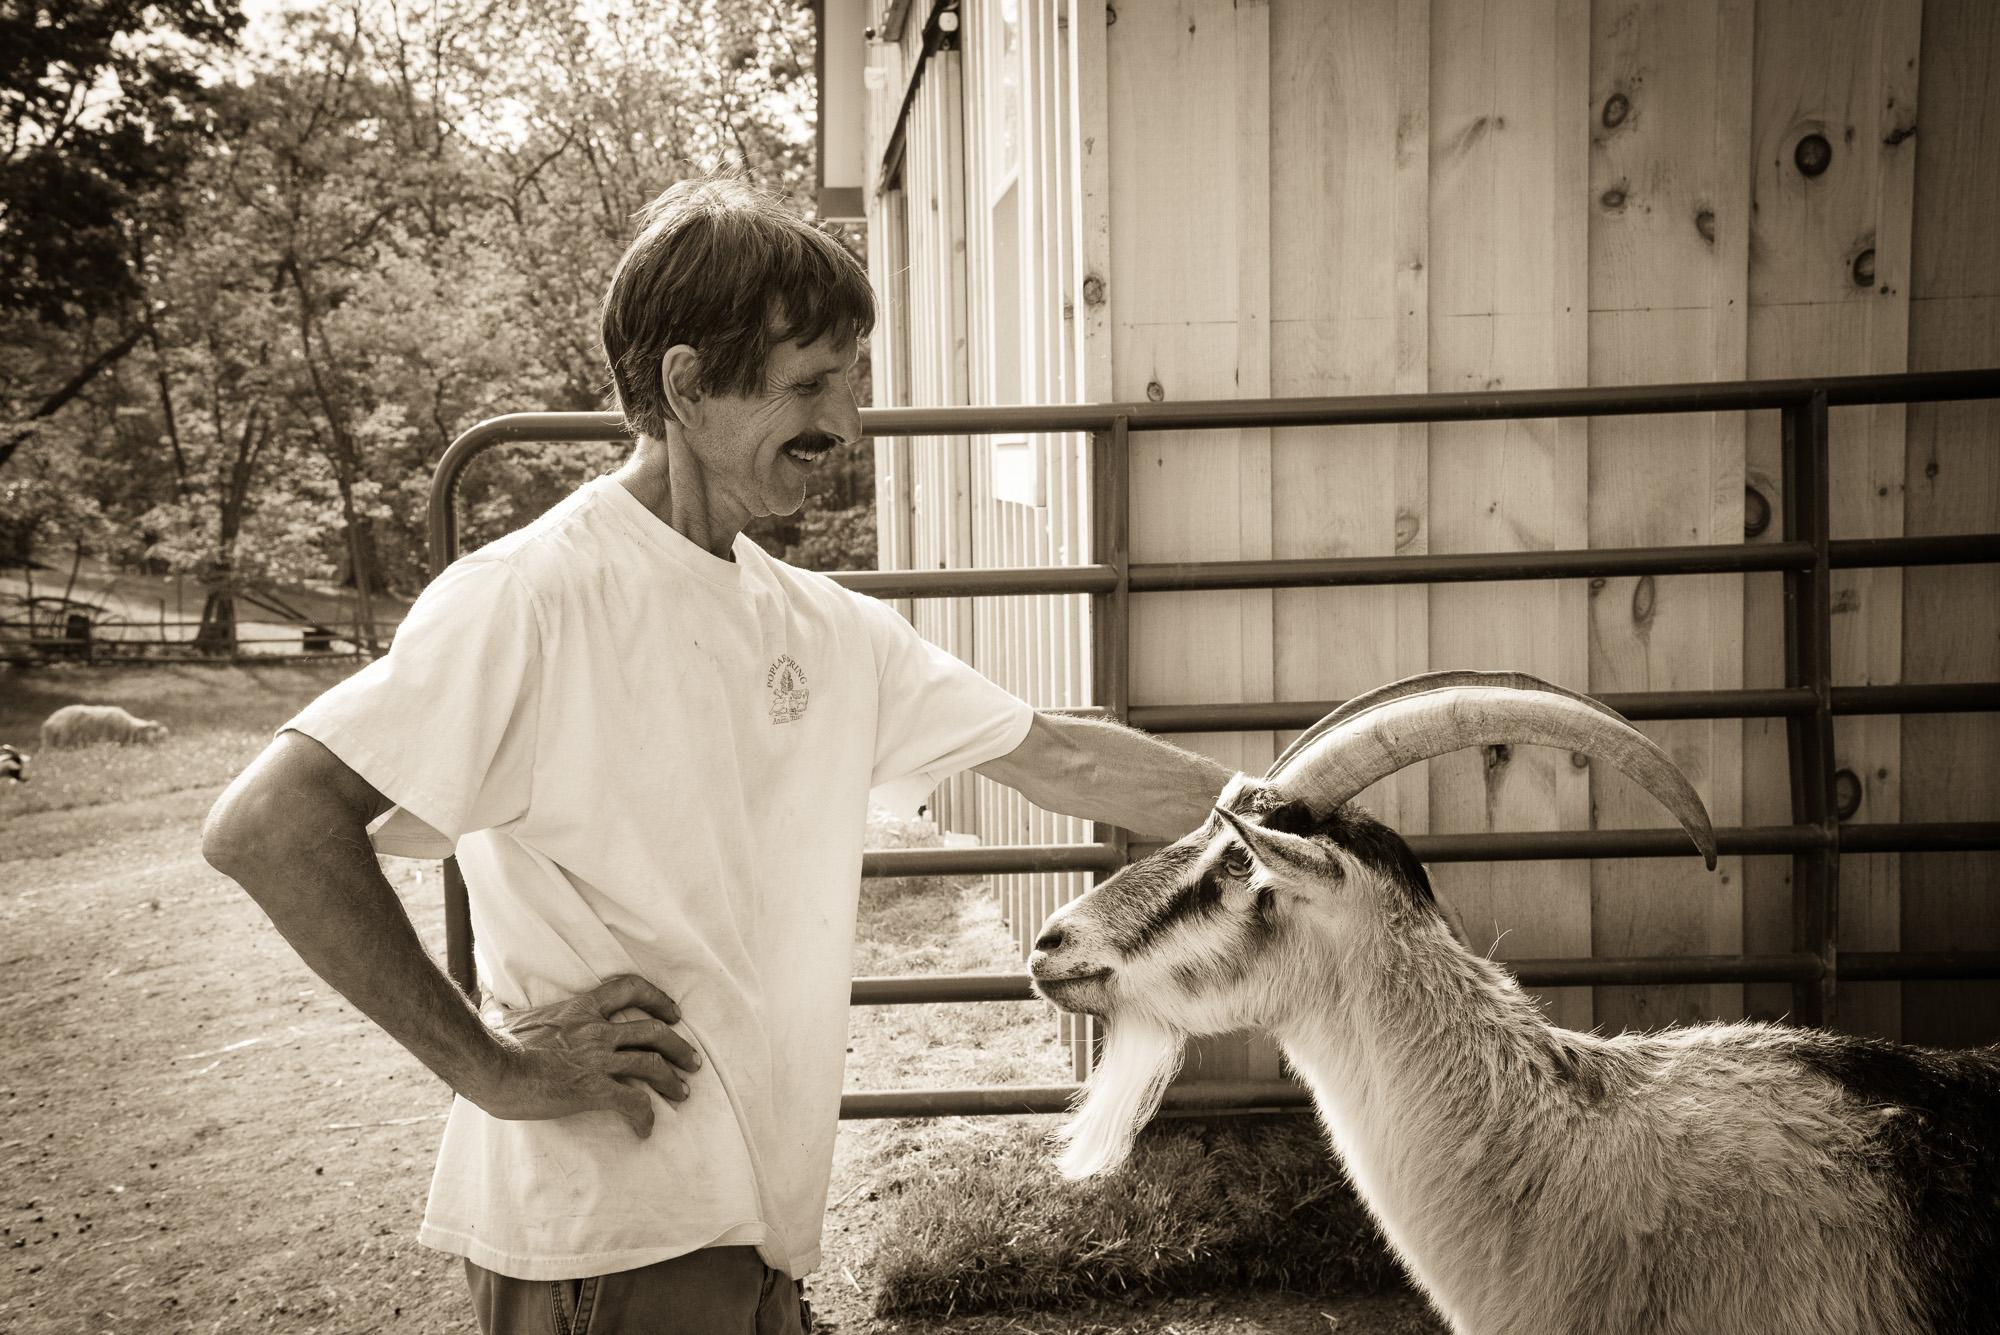 Dave Hoerauf, co-founder of Poplar Springs Animal Sanctuary in Maryland.